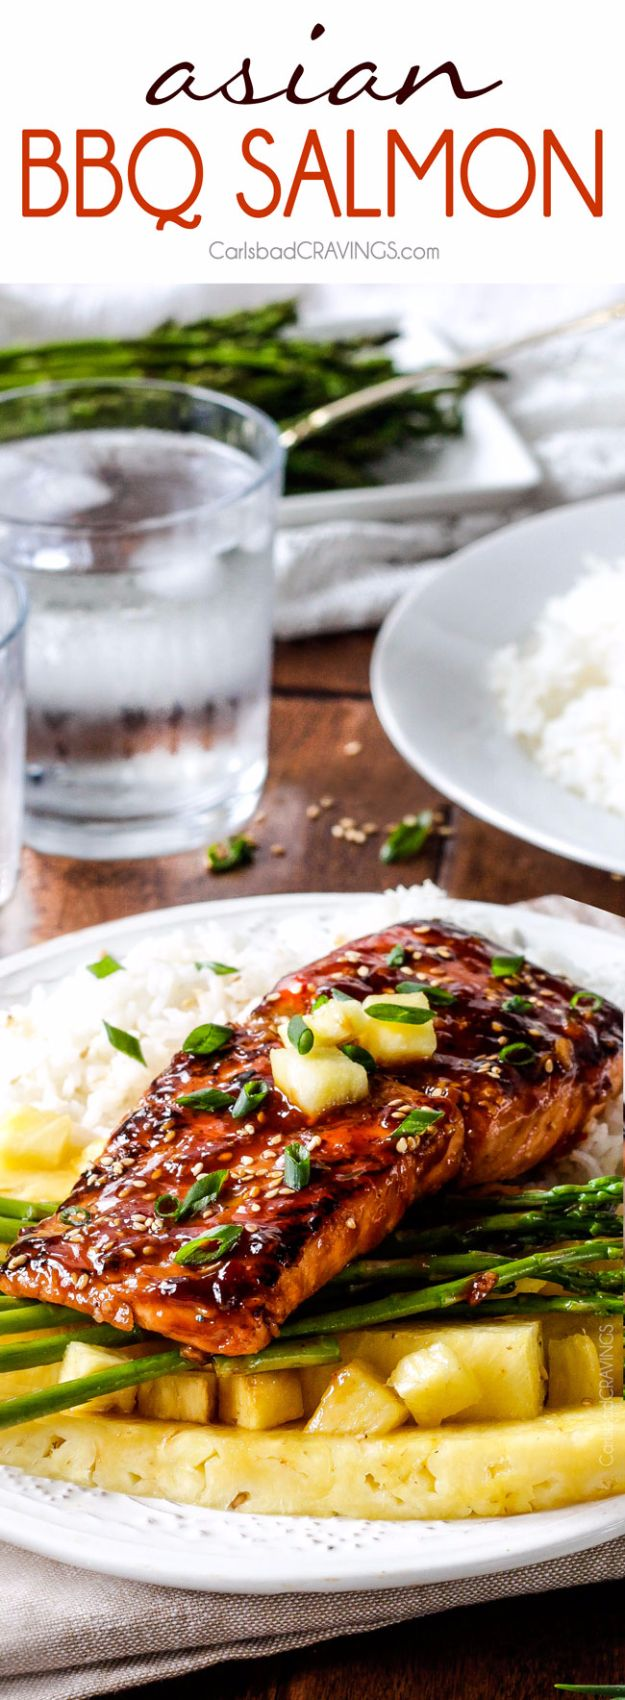 Best Barbecue Recipes - Asian BBQ Salmon - Easy BBQ Recipe Ideas for Lunch, Dinner and Quick Party Appetizers - Grilled and Smoked Foods, Chicken, Beef and Meat, Fish and Vegetable Ideas for Grilling - Sauces and Rubs, Seasonings and Favorite Bar BBQ Tips http://diyjoy.com/best-bbq-recipes